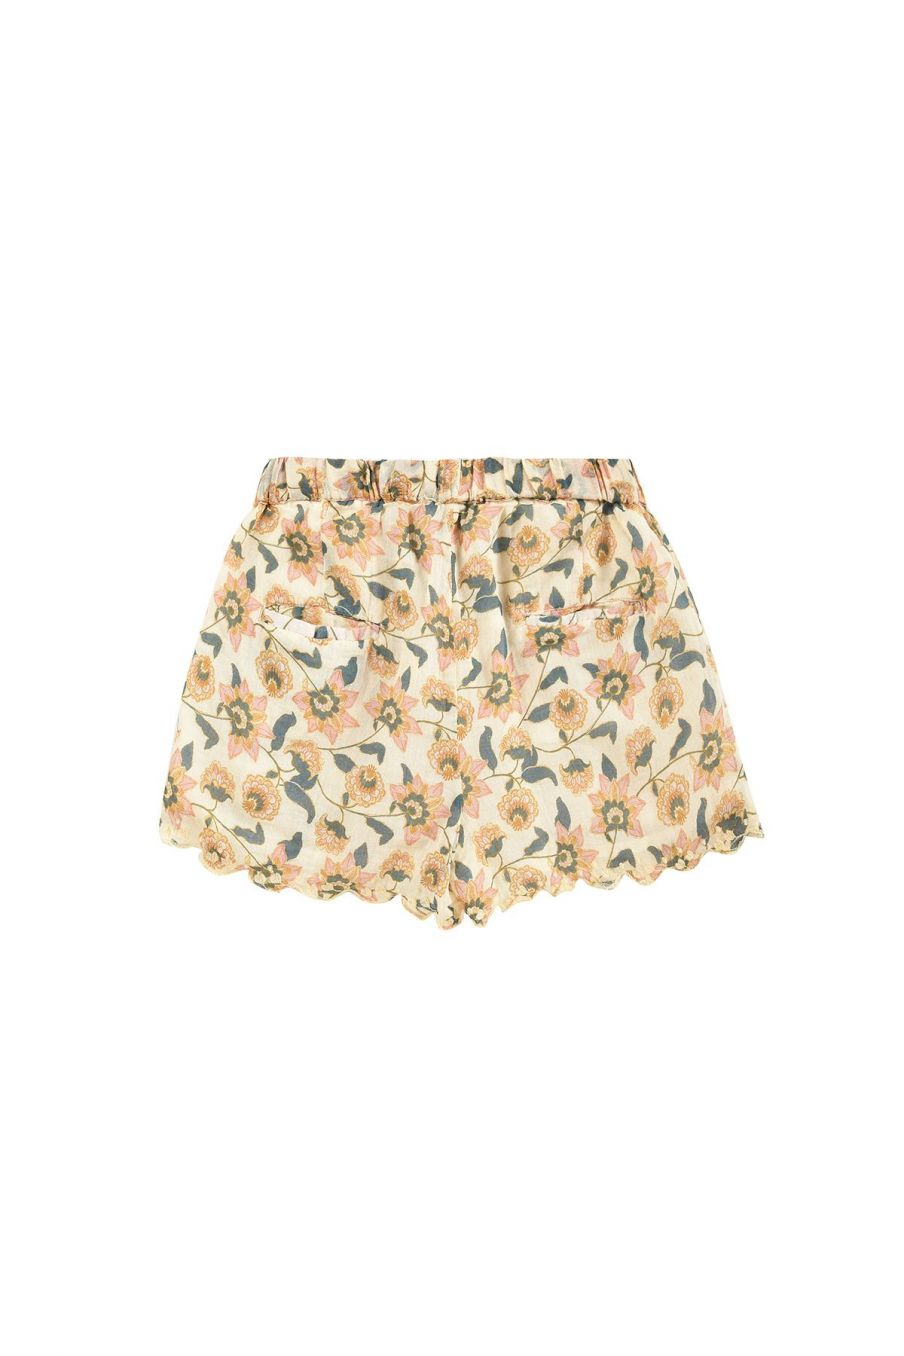 boheme chic vintage short fille vallaloid cream flowers